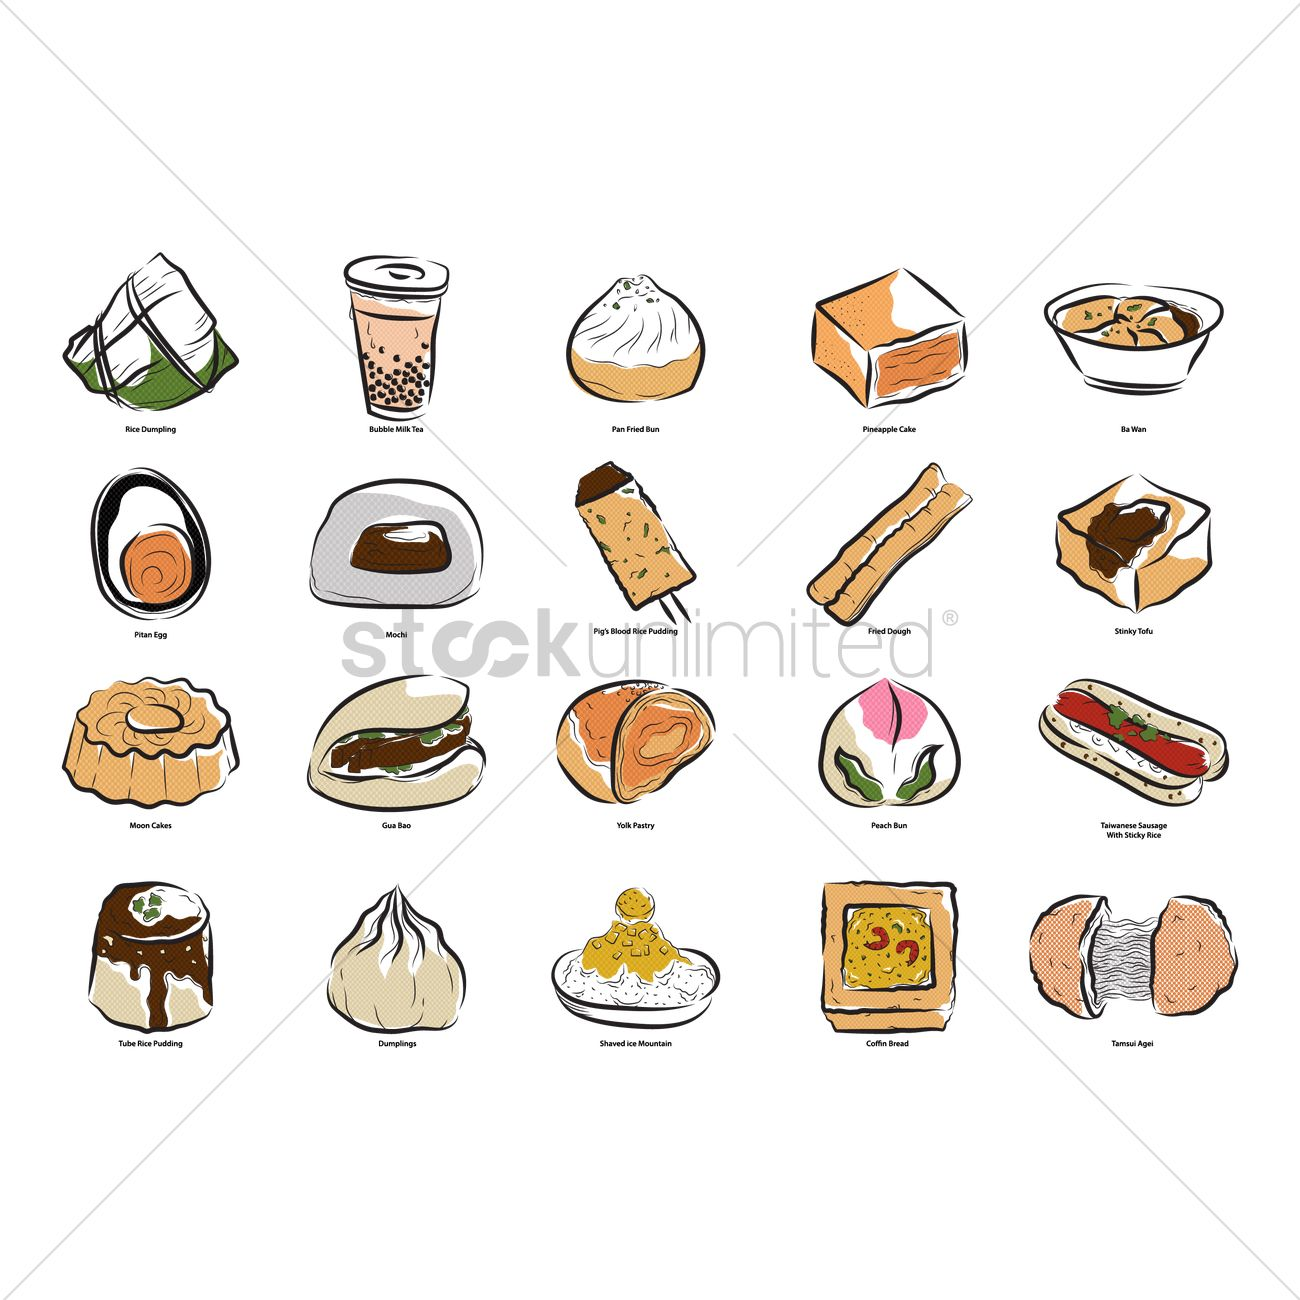 Set of taiwanese food icons Vector Image - 2035634 | StockUnlimited